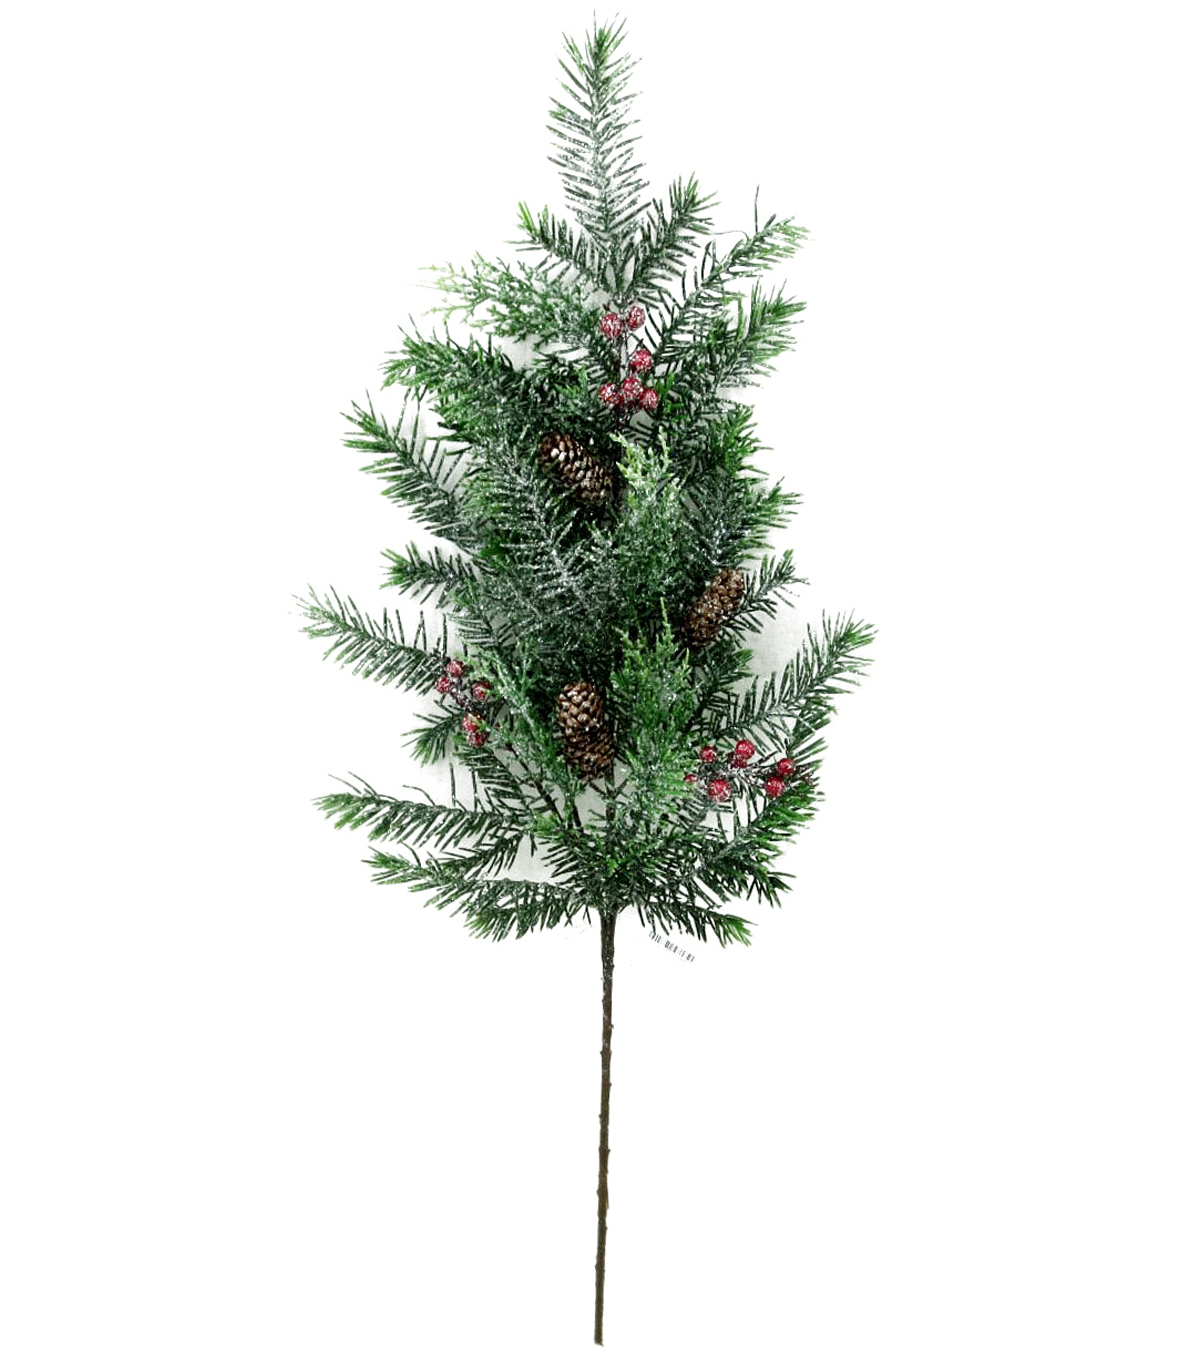 Blooming Holiday Douglas Fir, Cedar Spray With Berries & Pinecones